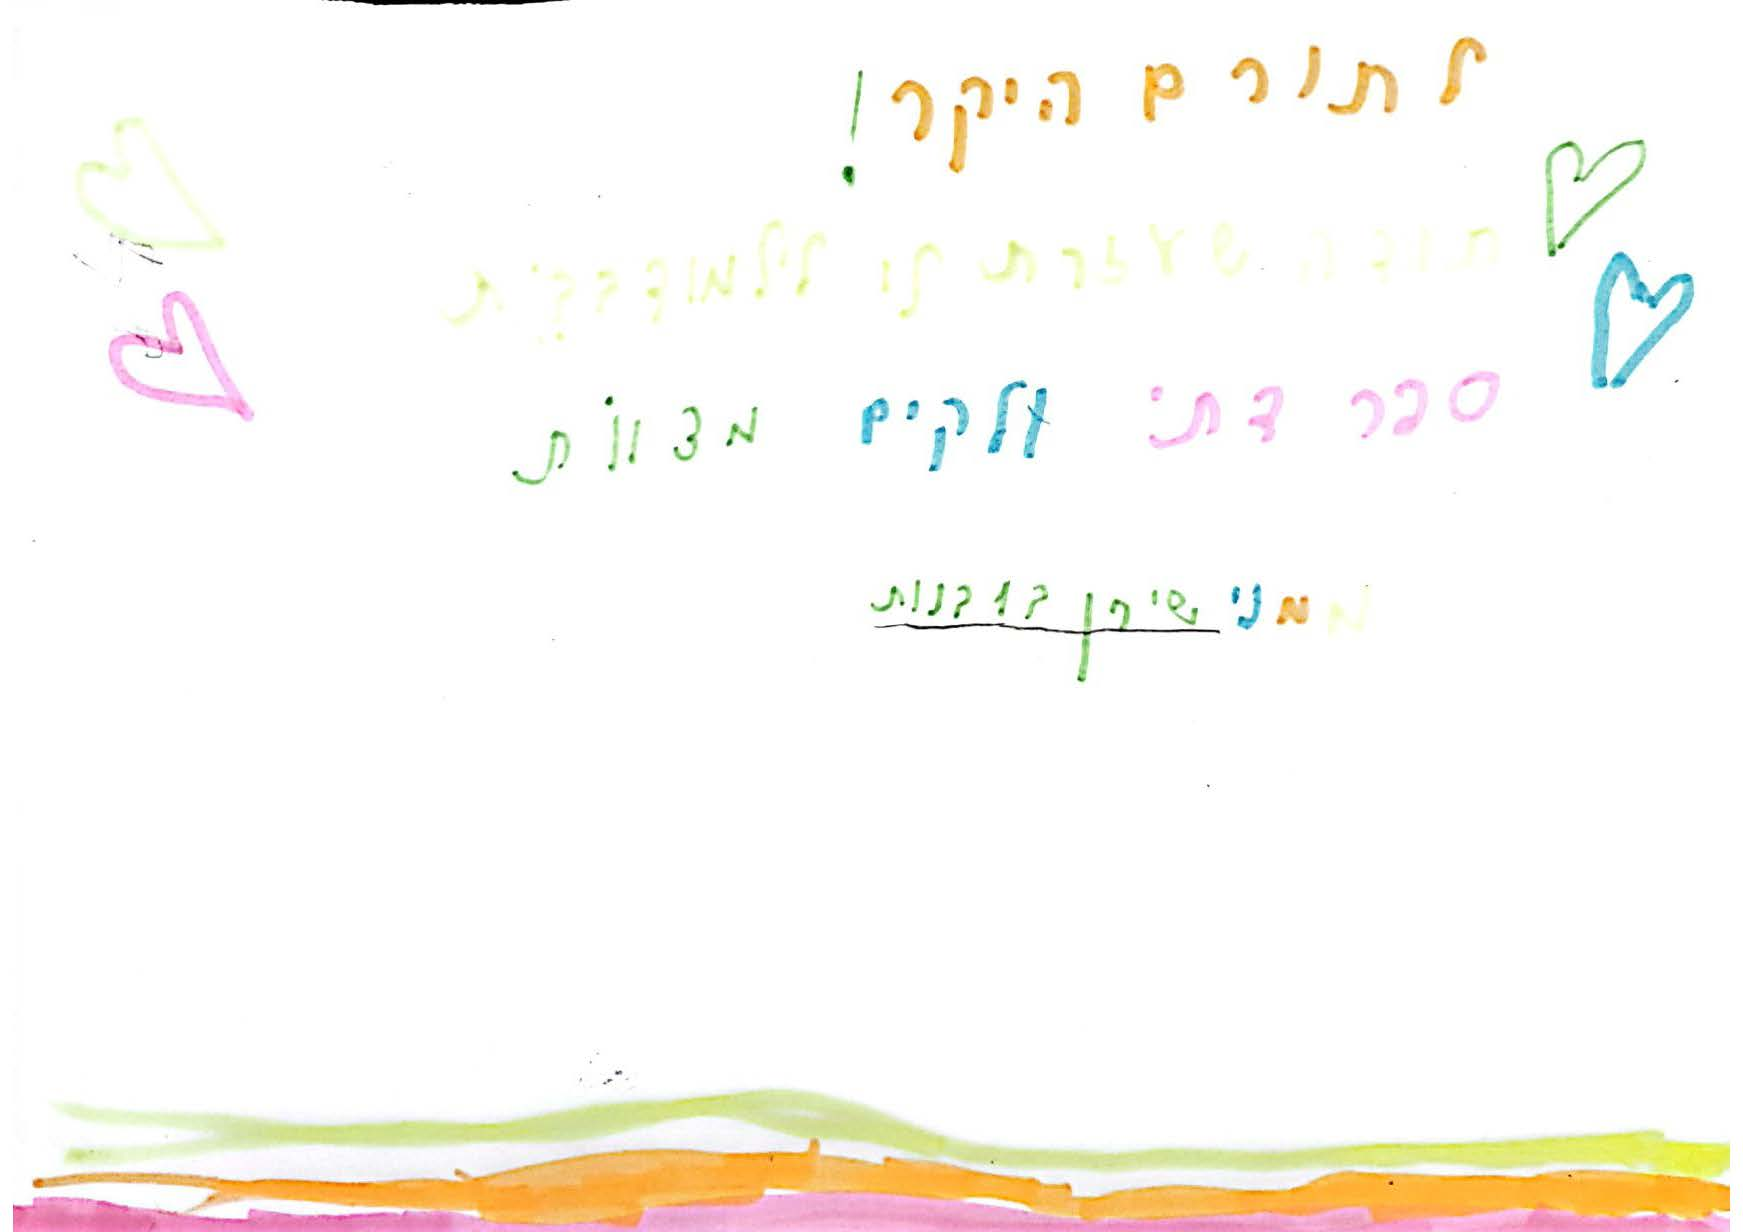 CamScanner 07-28-2021 09.08_Page_05